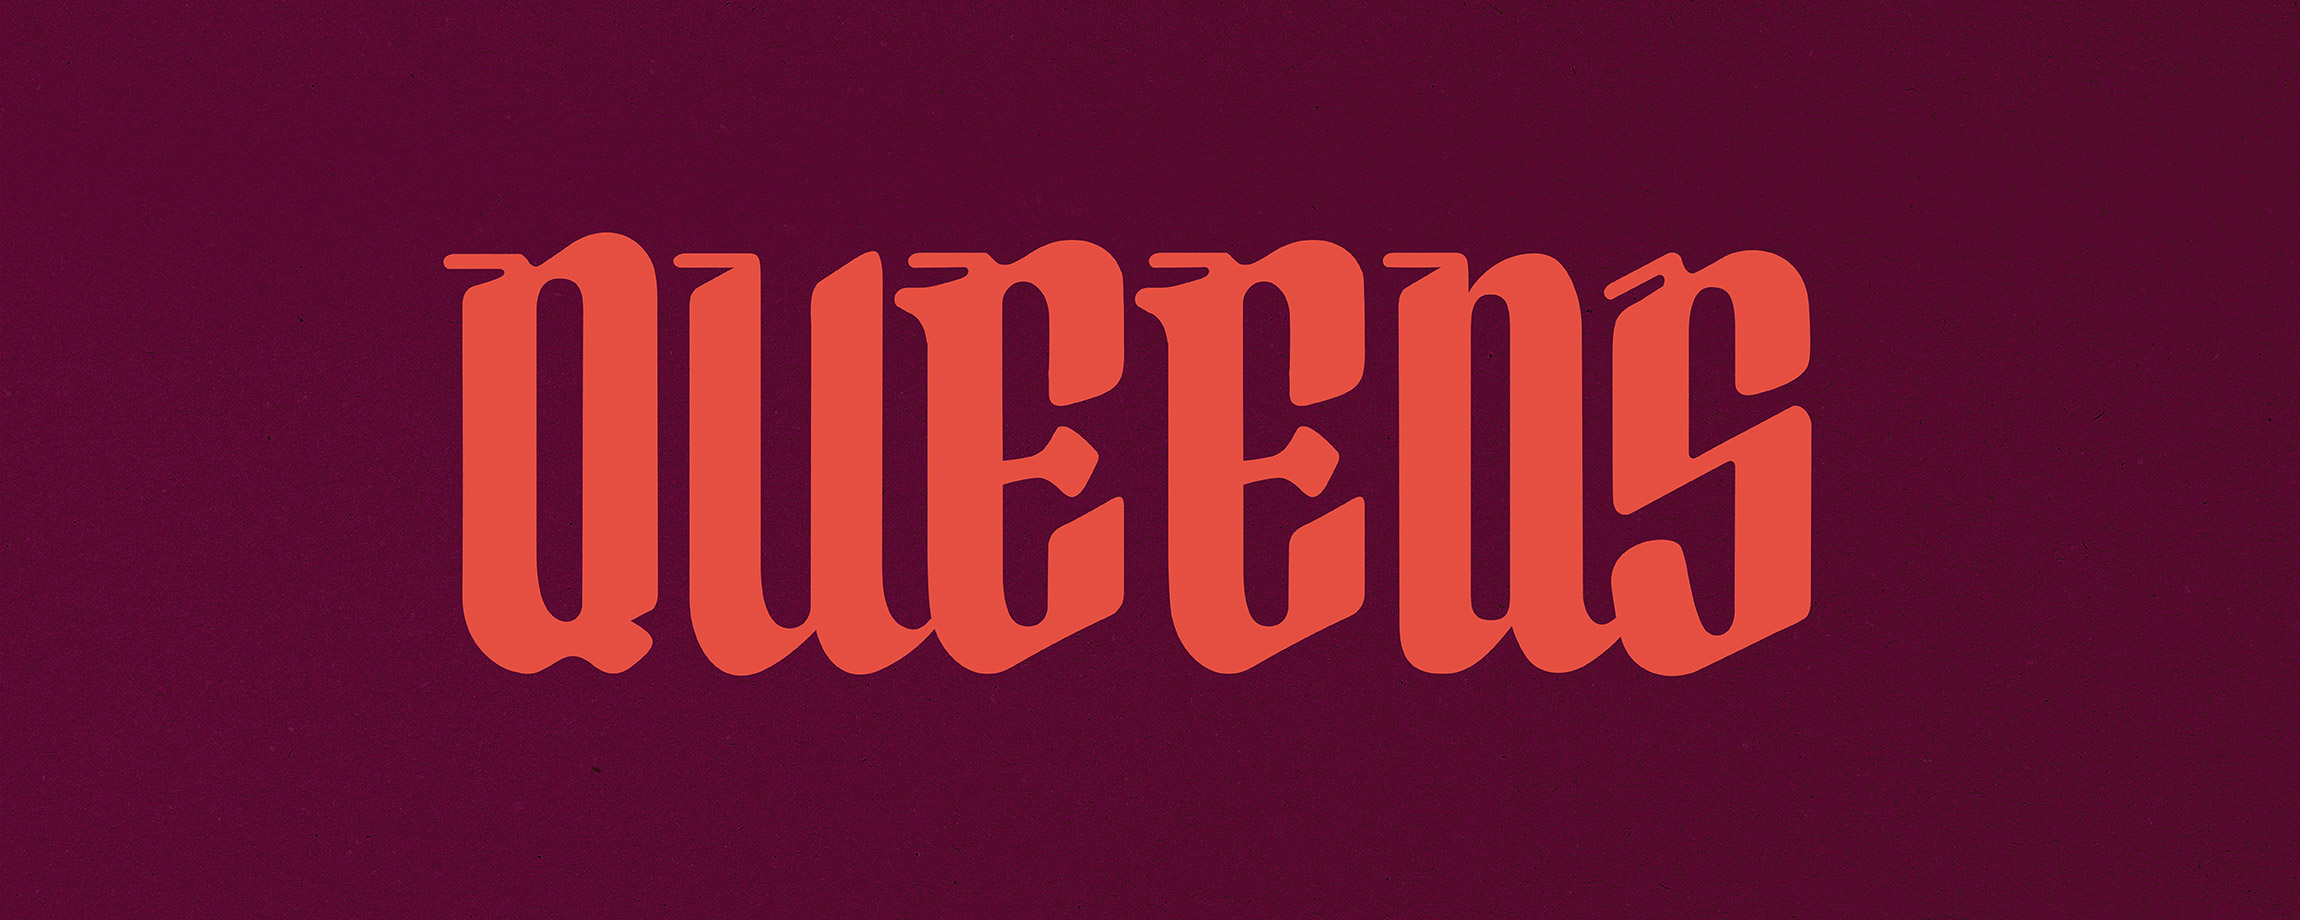 A burgundy banner with the word QUEENS in a bright red blackletter typeface